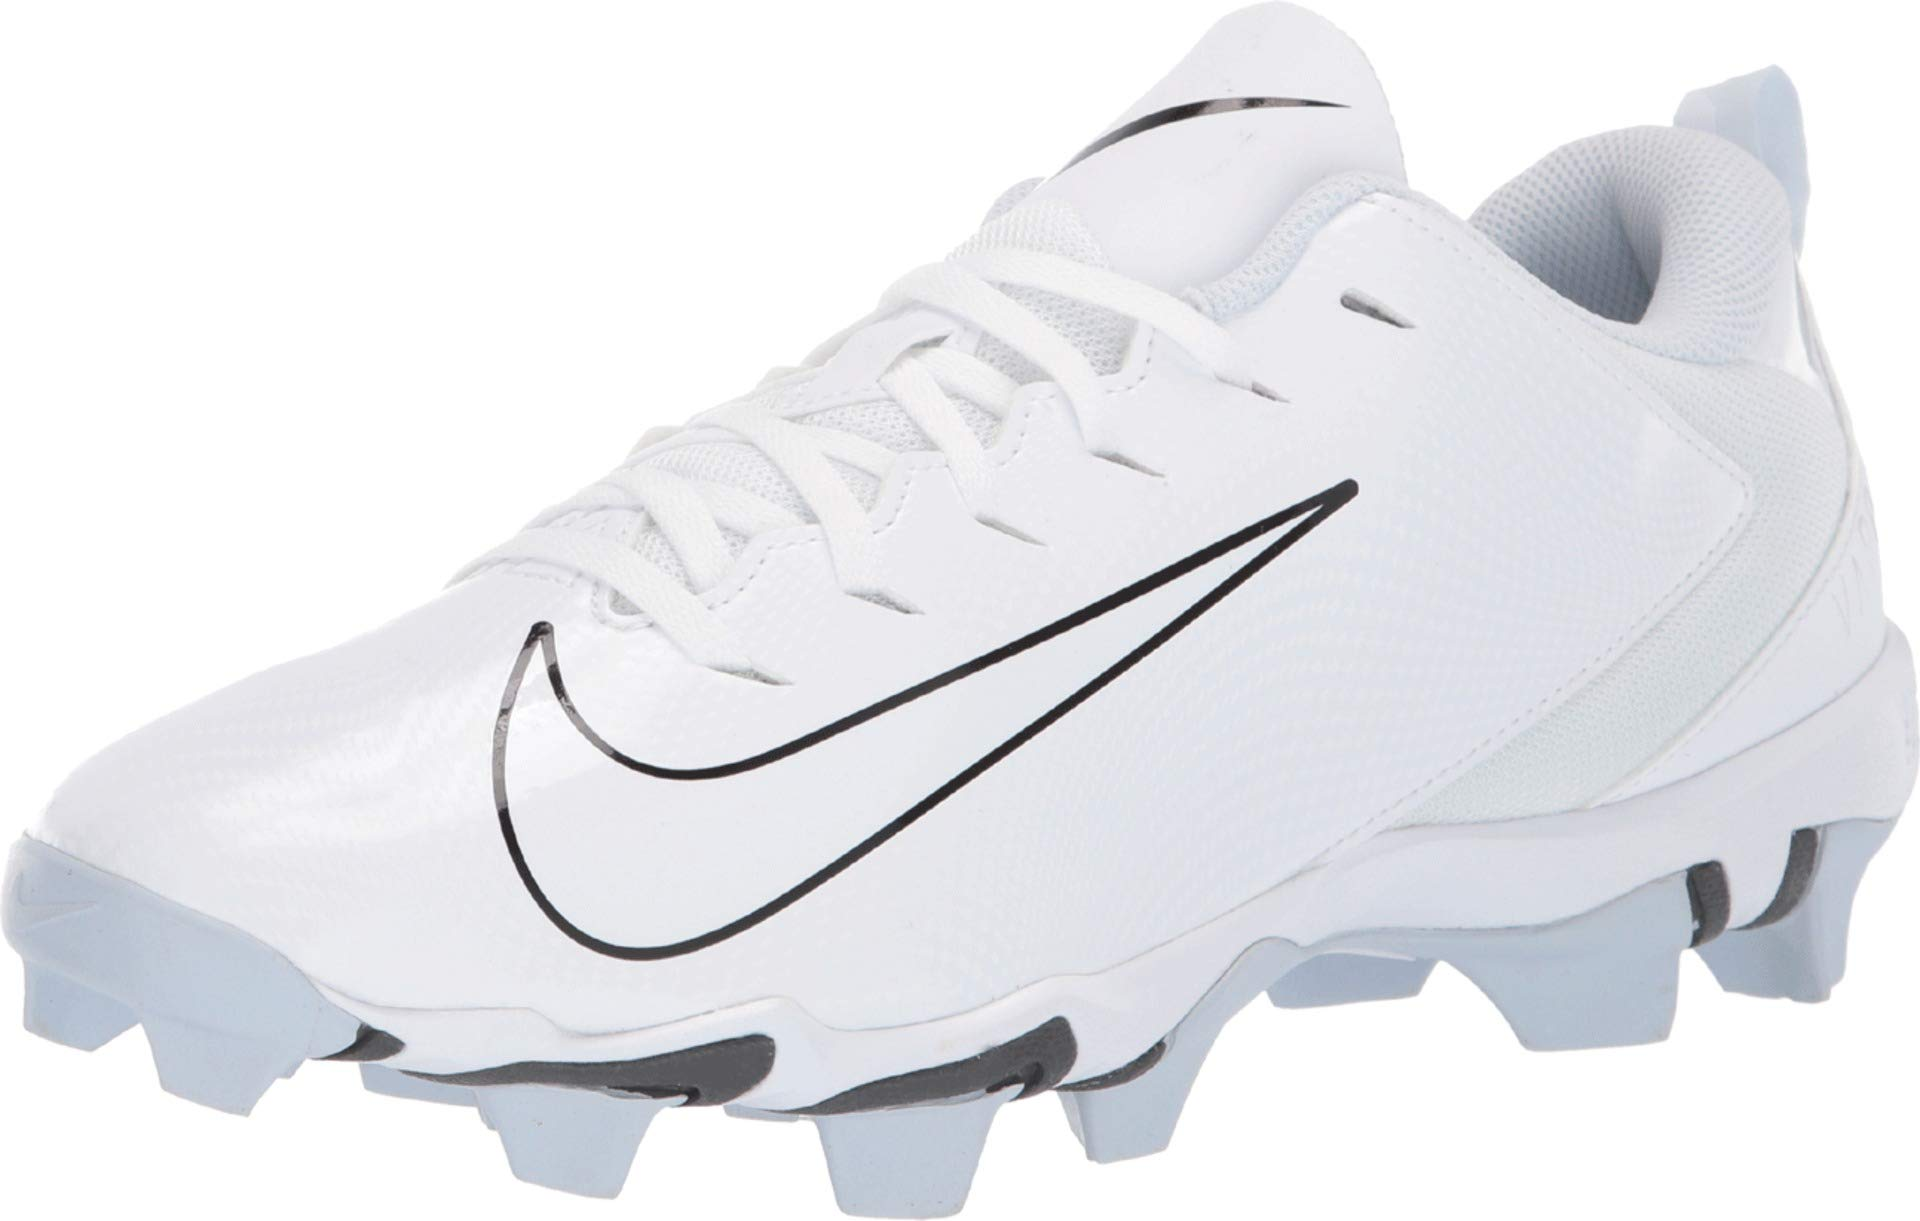 Nike Men's Vapor Untouchable Shark 3 Football Cleat White/Pure Platinum/Dark Grey Size 11 M US by Nike